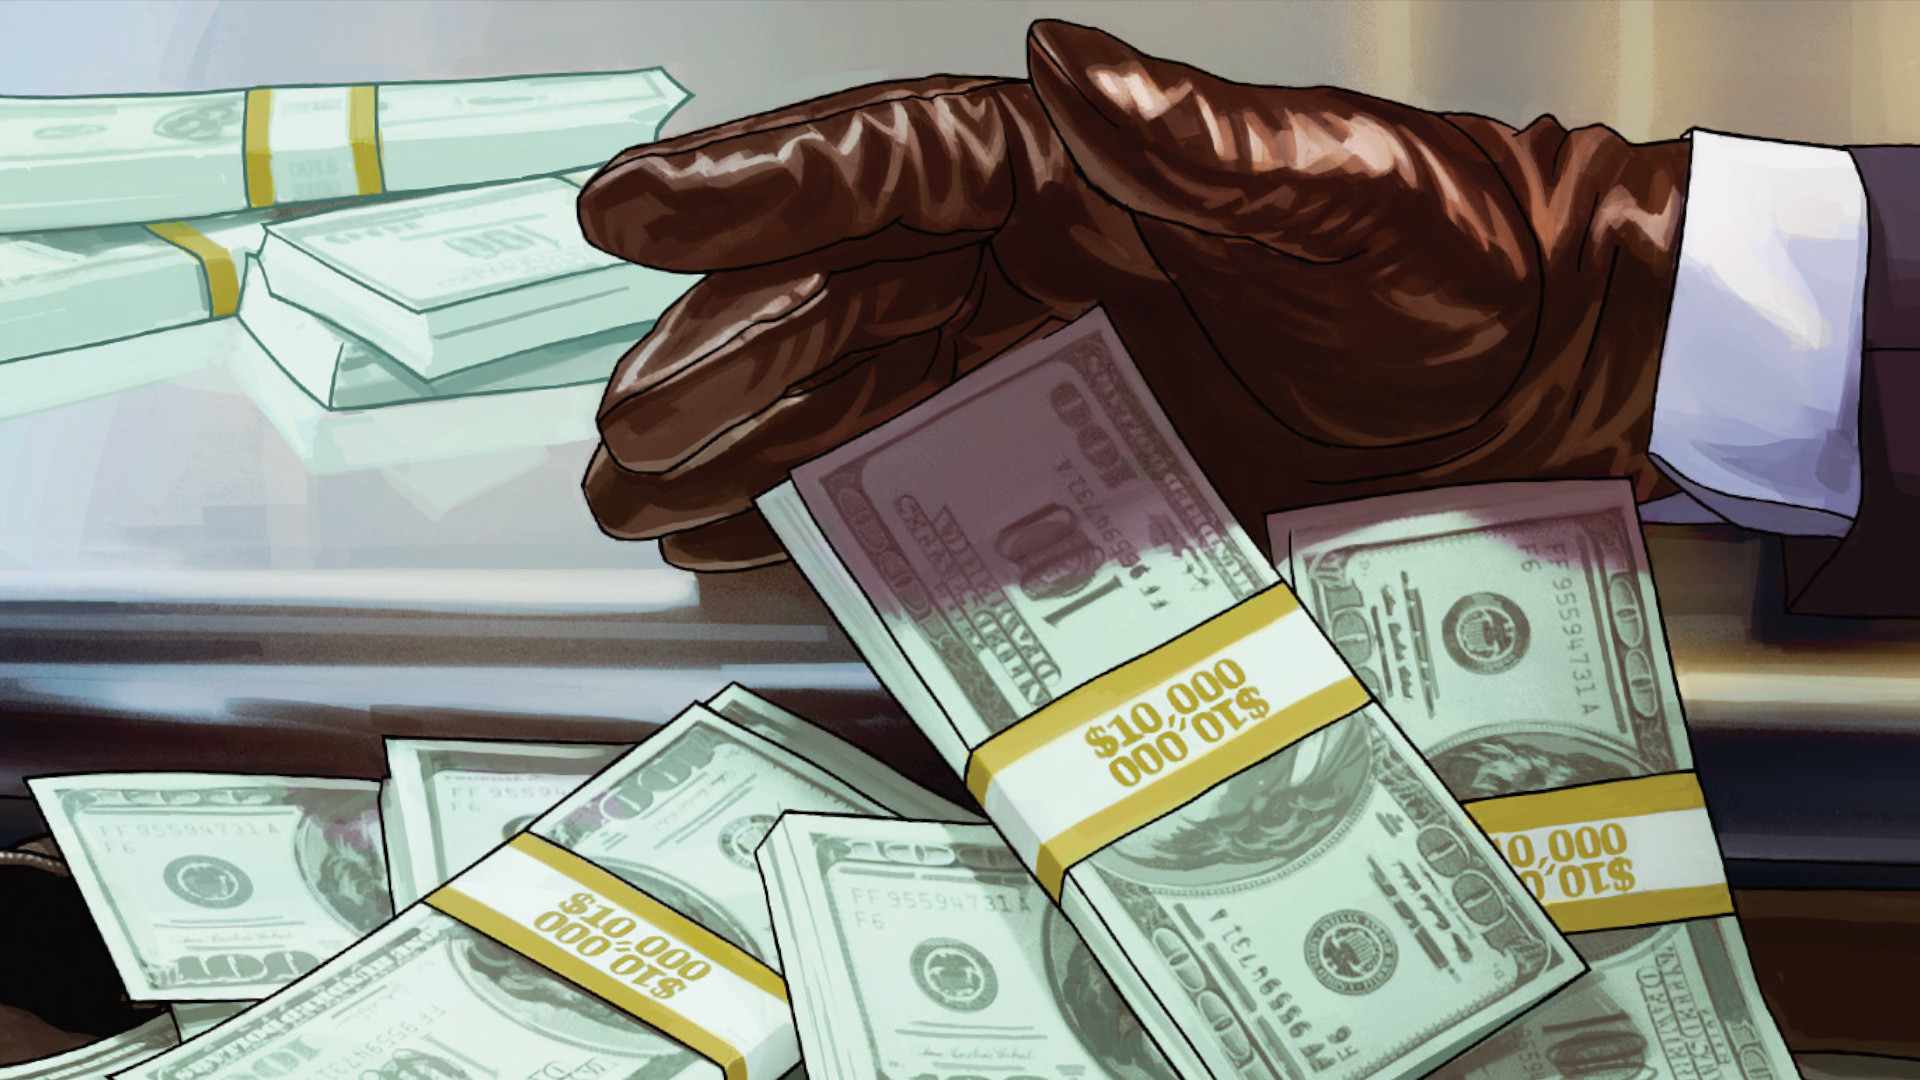 Rockstar pays $10k to the modder who fixed GTA Online's ridiculous load times